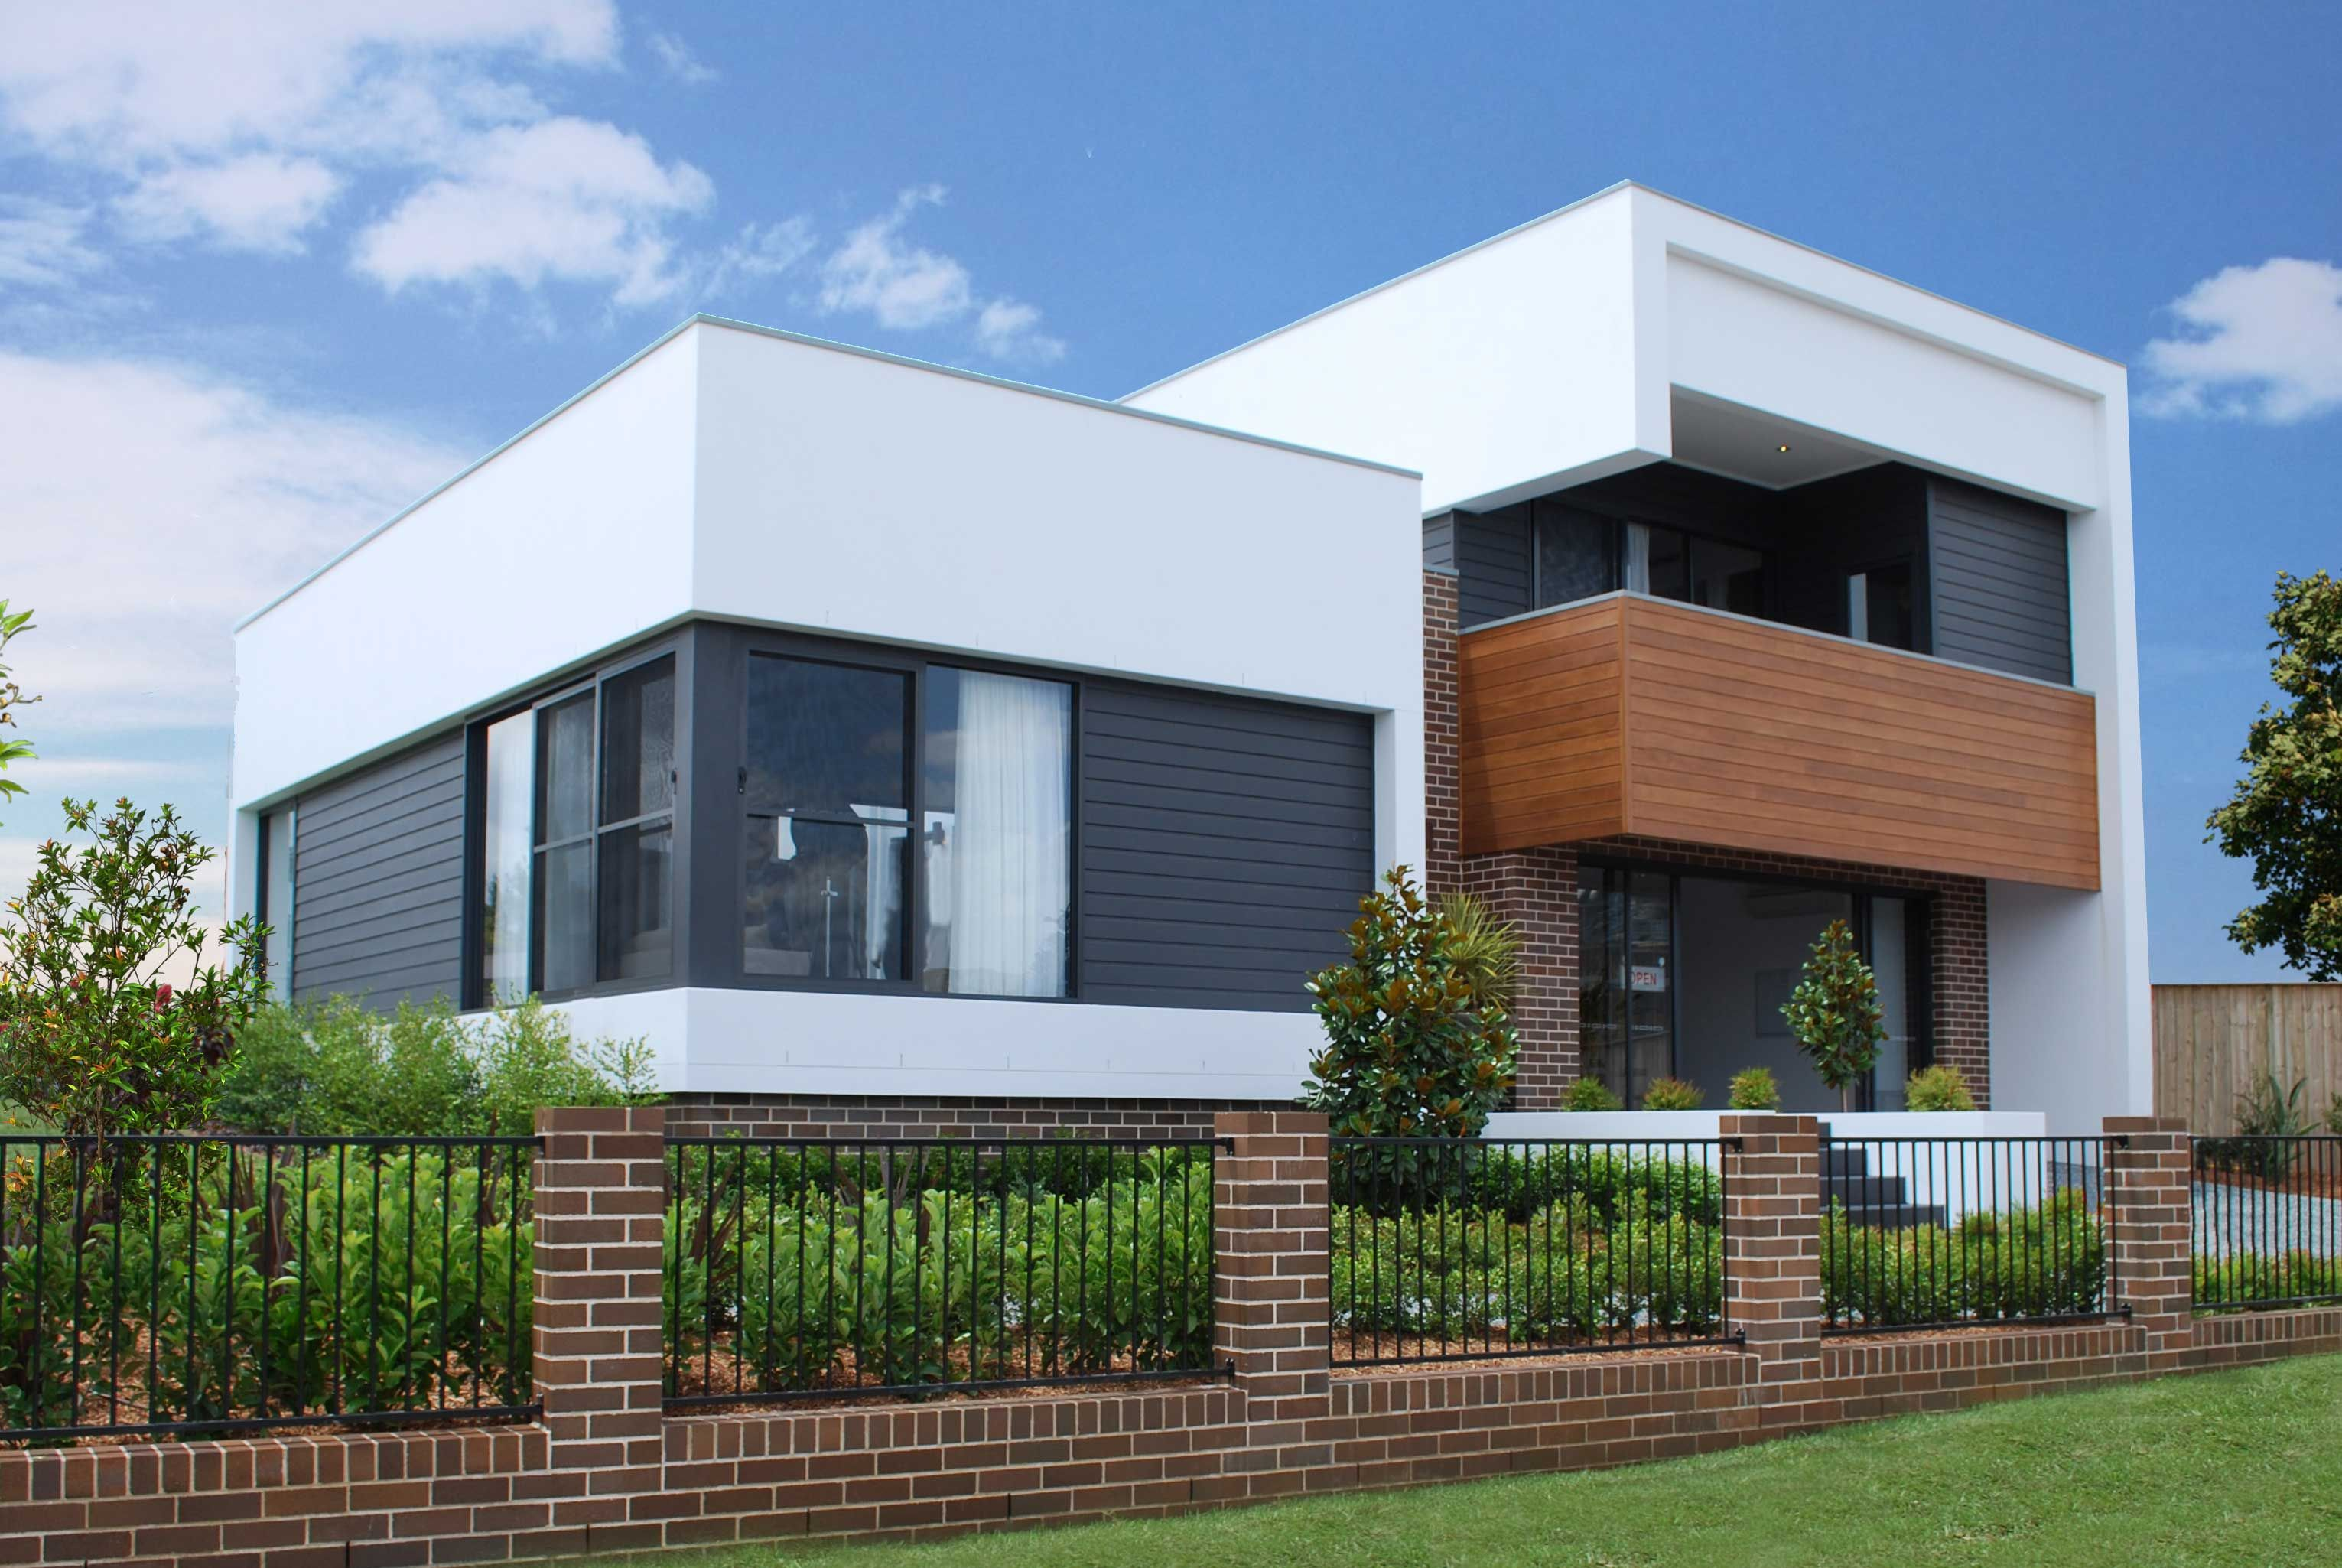 Home Pics homes | experience the zac homes difference at our sydney display